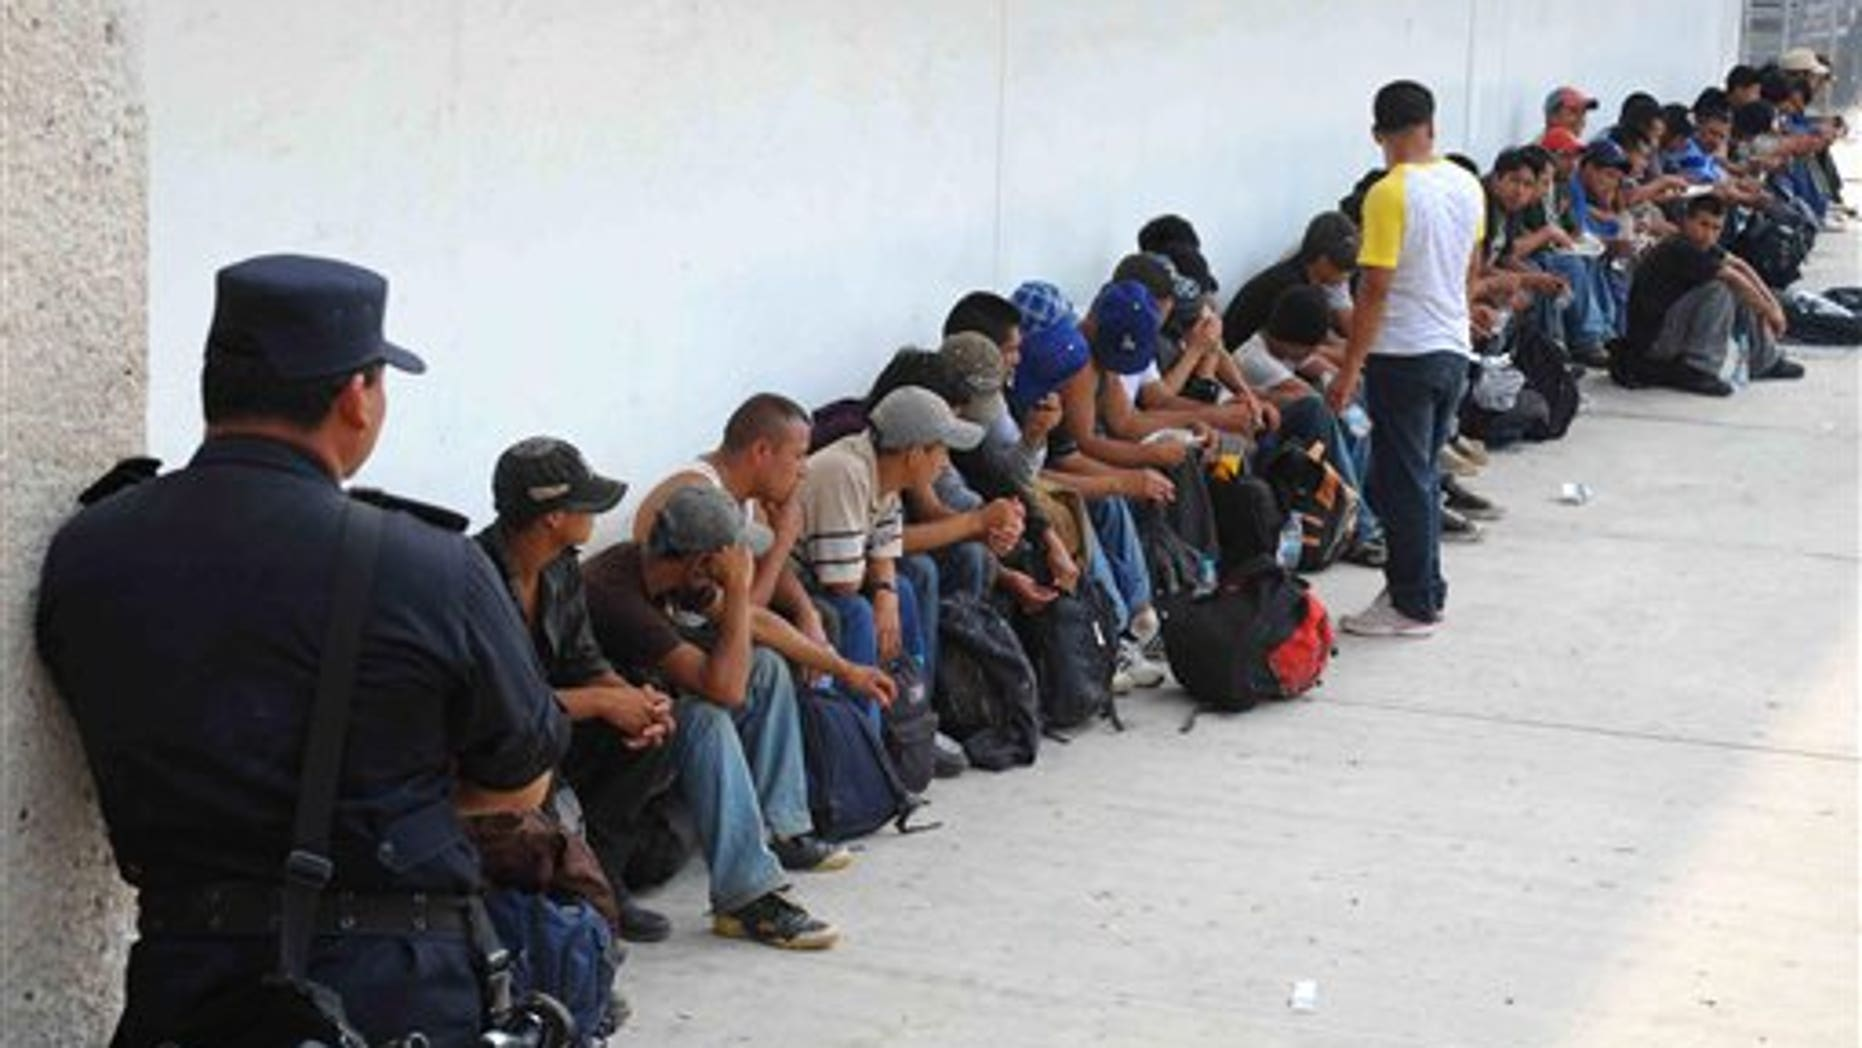 Migrants who were found in two trailer trucks bound for the United States, sit under the guard of a policeman in Tuxtla Gutierrez, Mexico, Tuesday May 17, 2011.  Chiapas authorities say they rescued 513 migrants: 410 of the migrants were from Guatemala, 47 from El Salvador, 32 from Ecuador, 12 from India, six from Nepal, three from China and one each from Japan, the Dominican Republic and Honduras. (AP Photo/Alejandro Estrada)